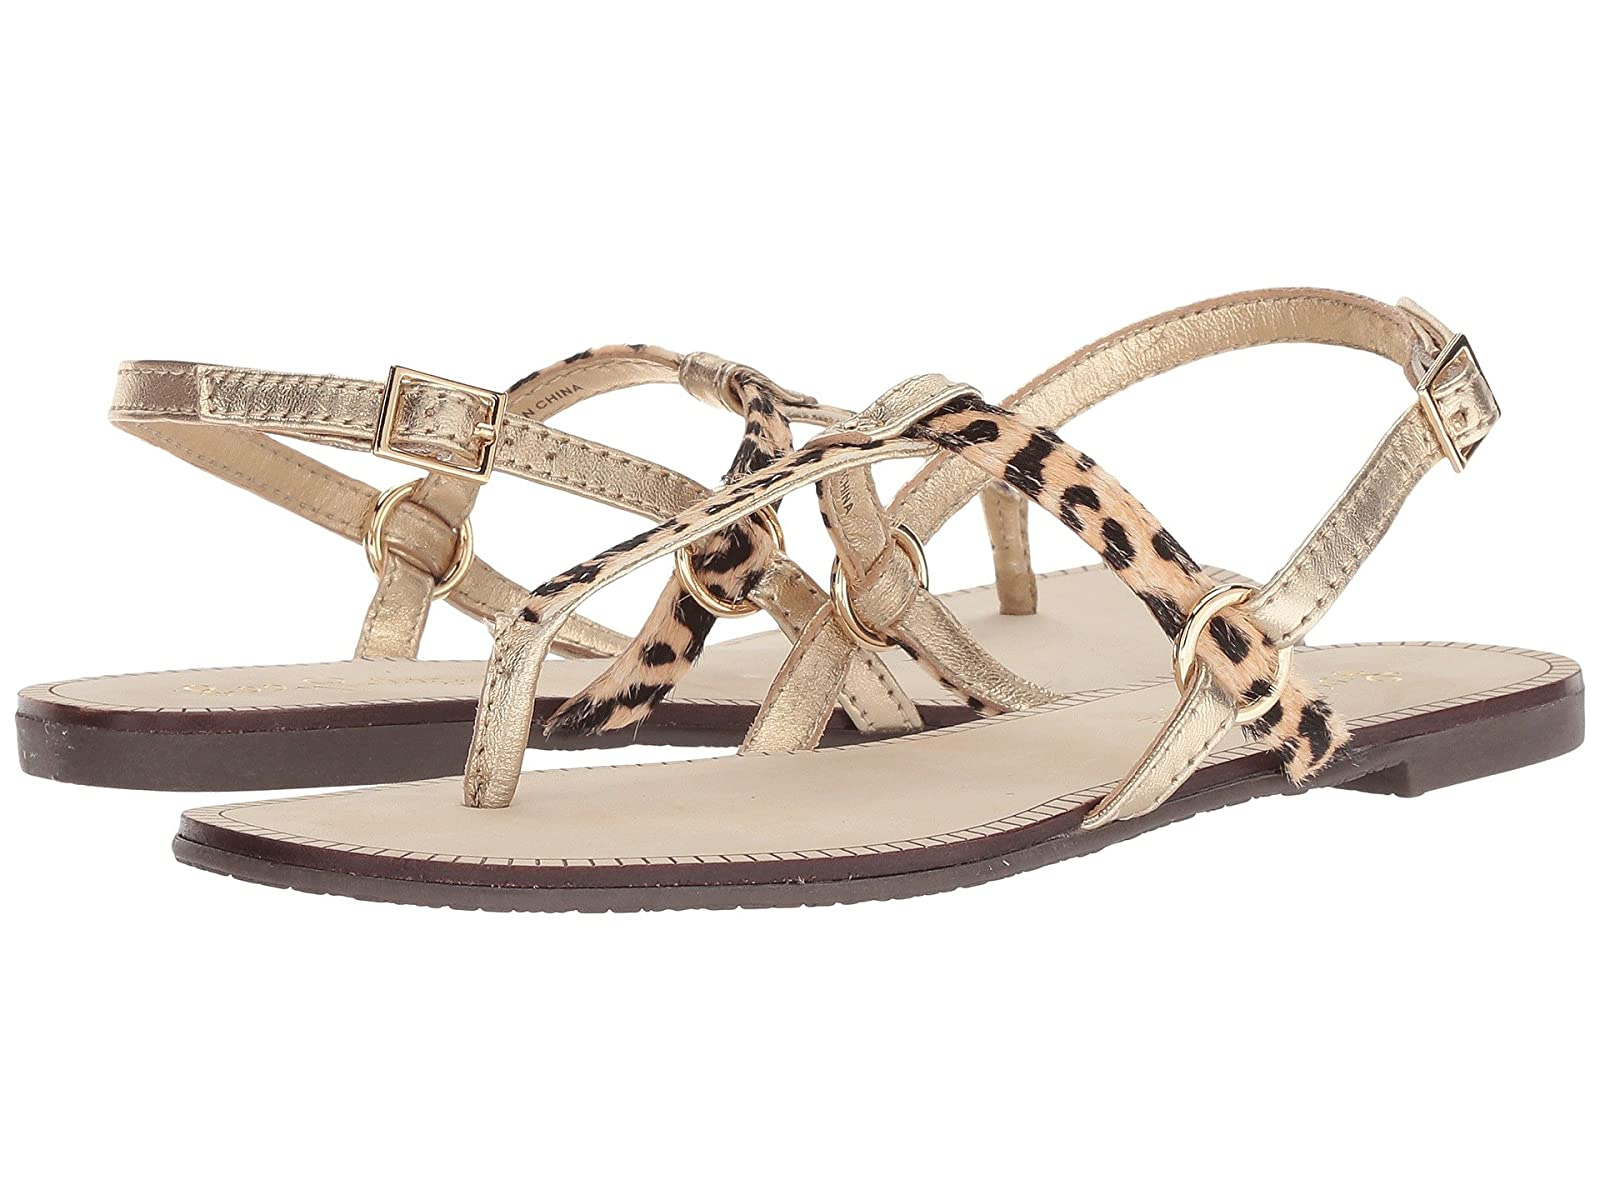 Mr/Ms:Lilly Mr/Ms:Lilly Mr/Ms:Lilly Pulitzer Jackie Sandal:Linden, Fashion 6a4729